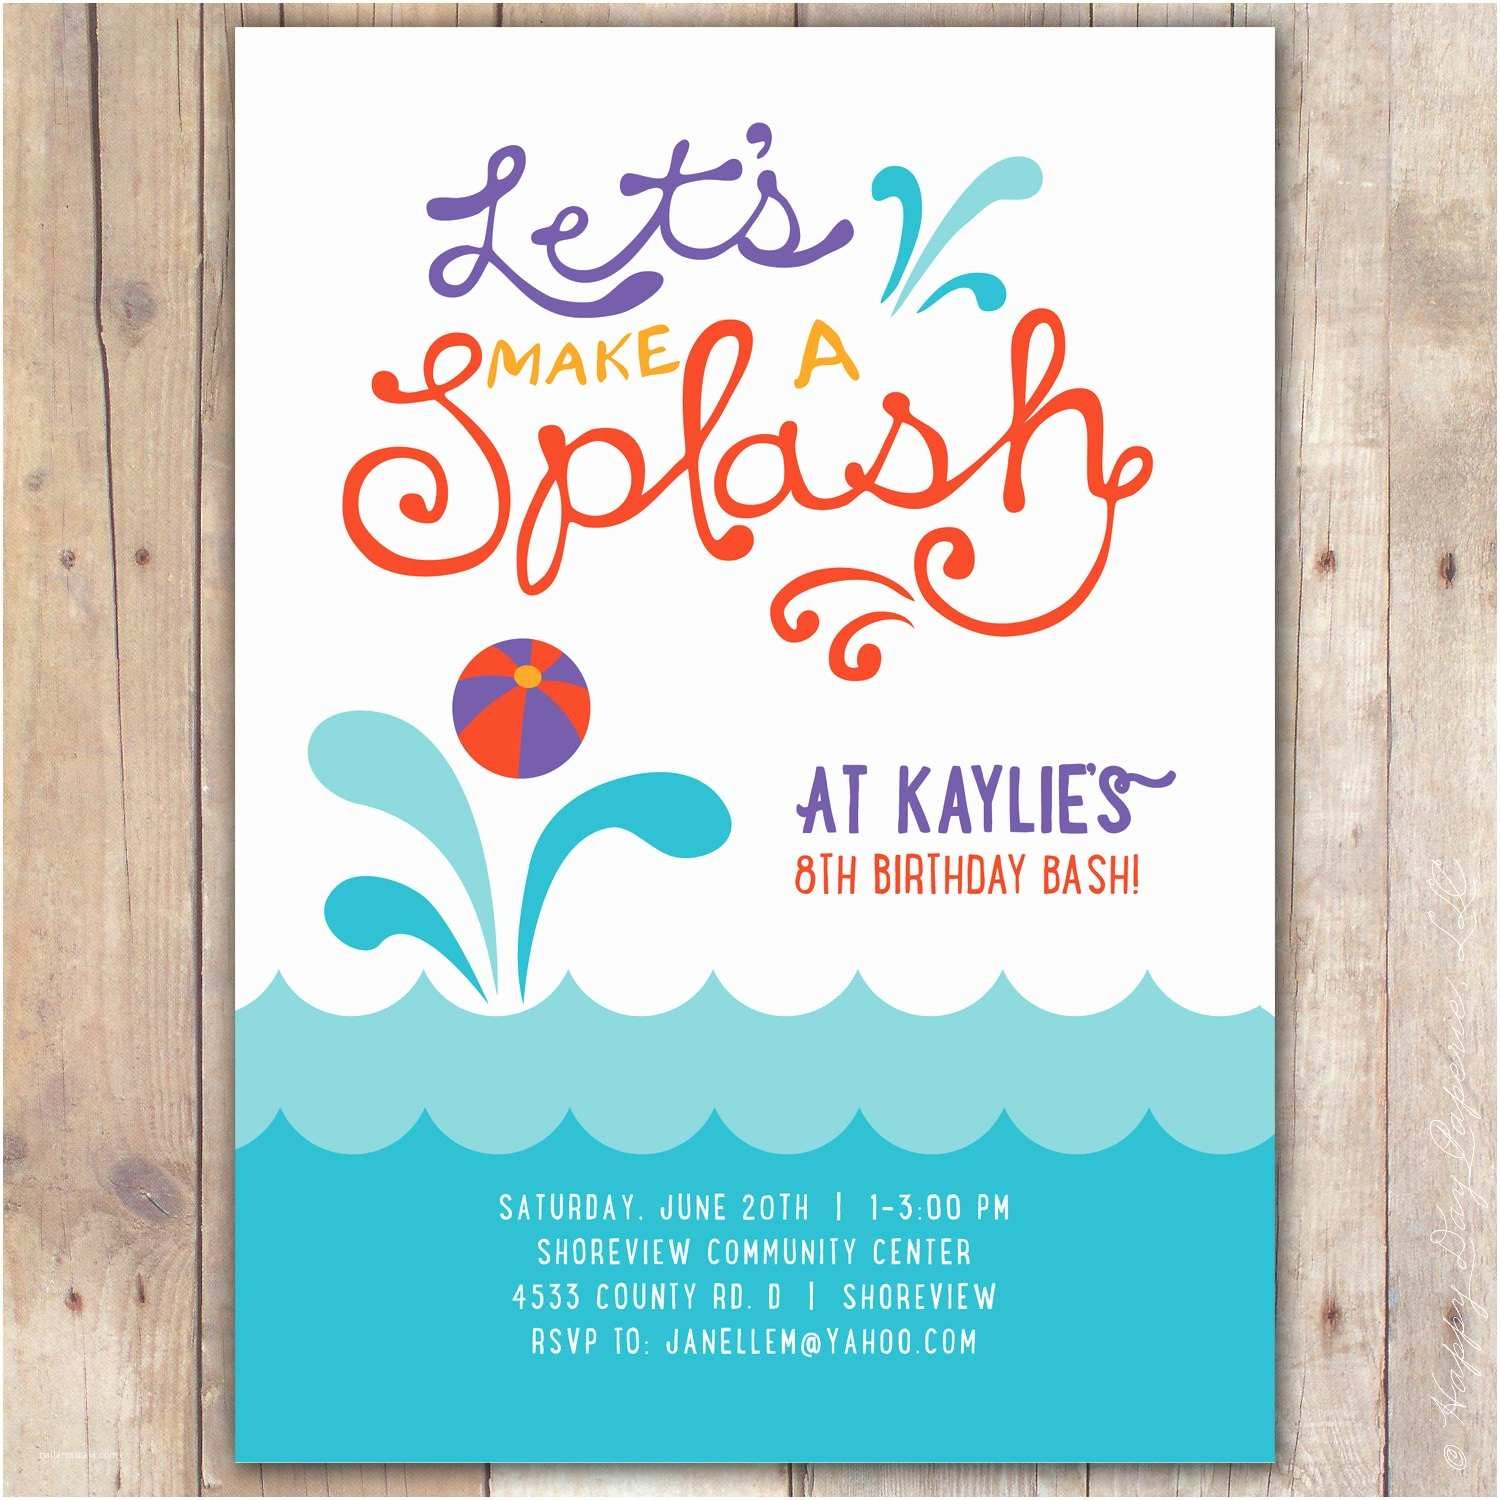 Pool Party Invitation Template Pool Party Invitations Pool Party Invitations Using An